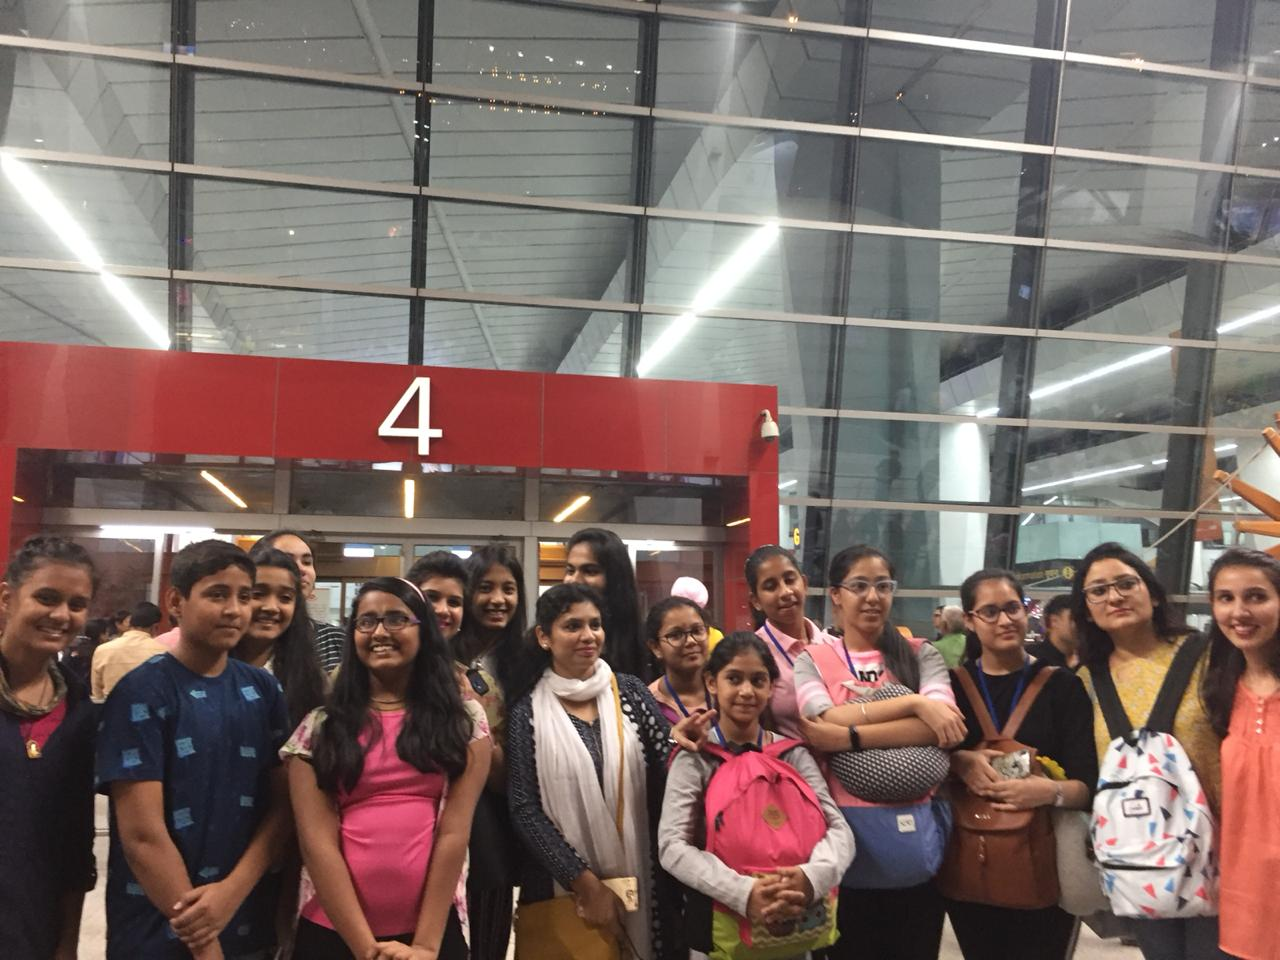 Nantes in France welcomes Indian School Group on 20th May 2019